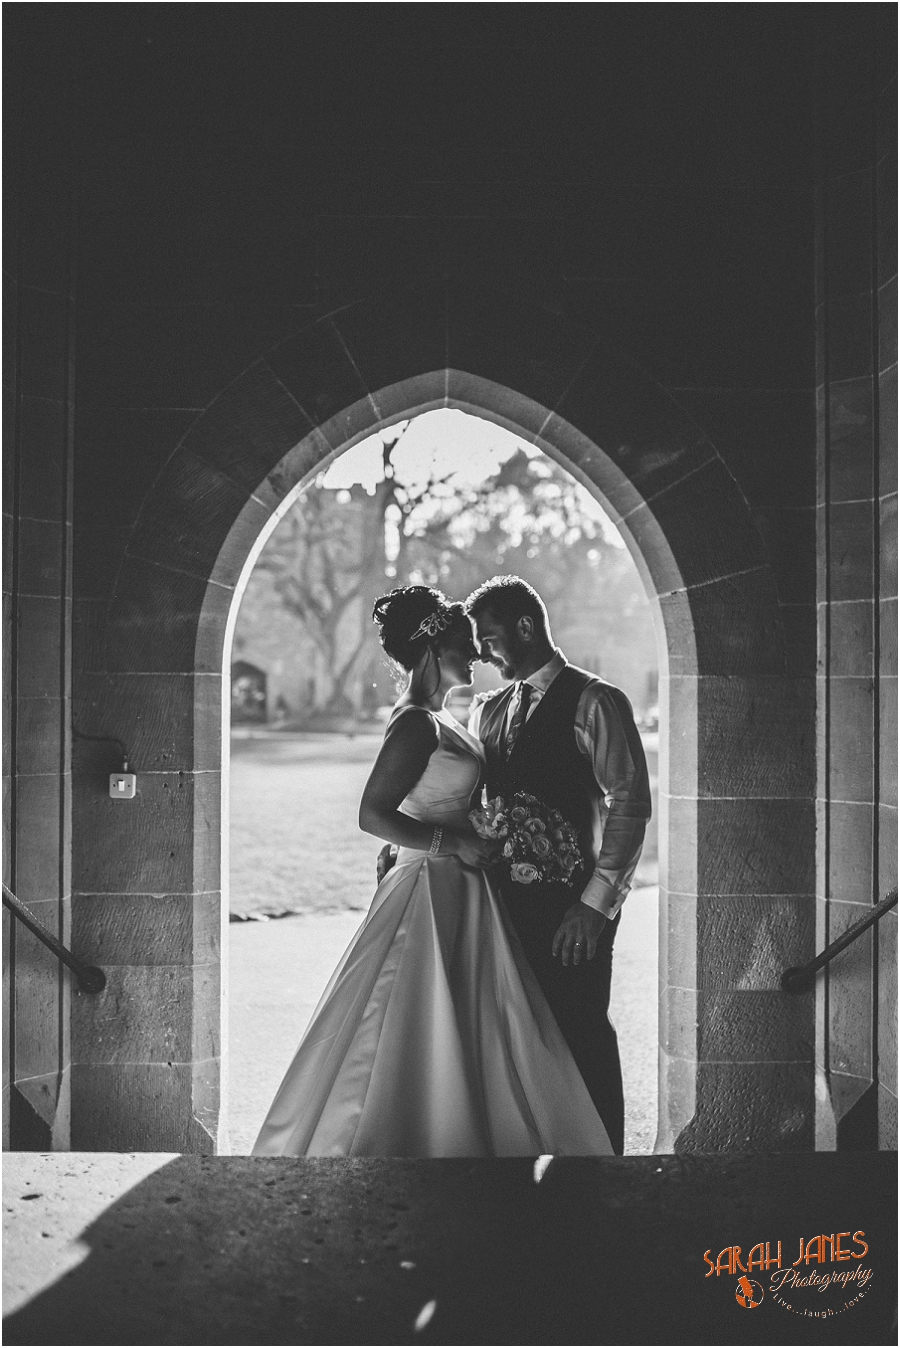 Peckforton Castle wedding photographer, Wedding photography at Peckforton Castle, Cheshire wedding photography, magazine style wedding photography_0044.jpg